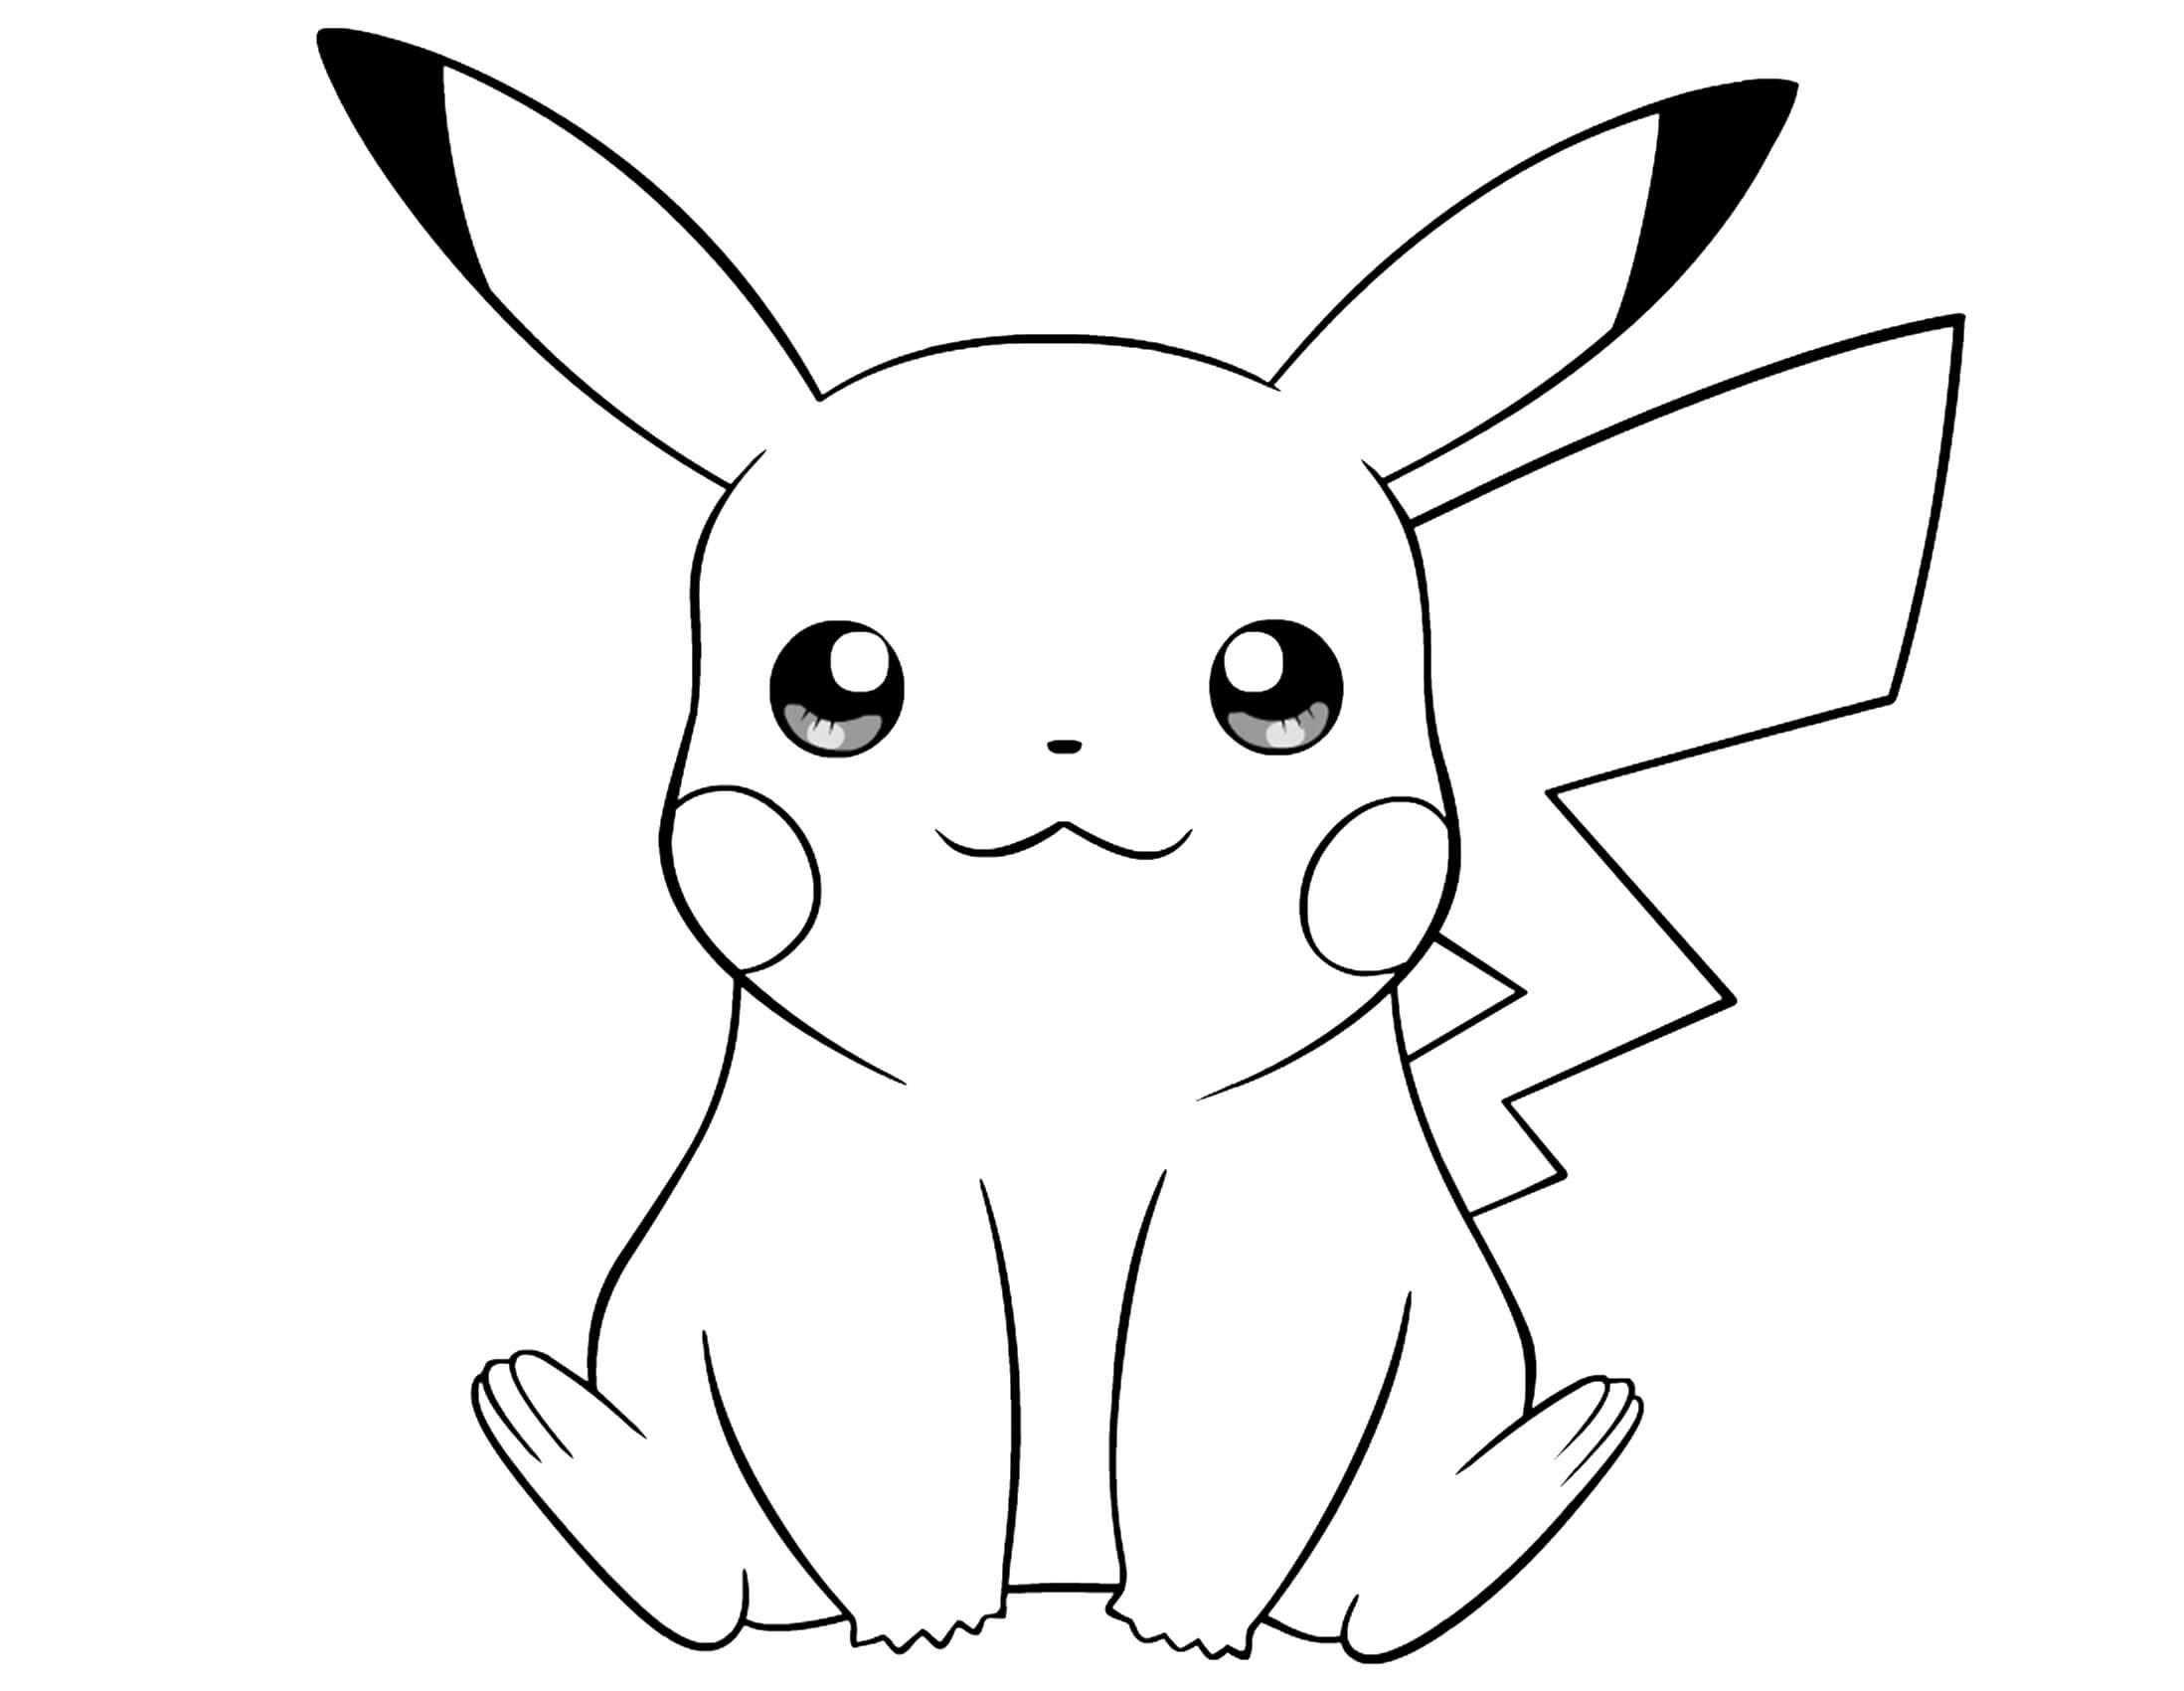 pikachu coloring page pokemon thunderbolt attack 10 pikachu coloring pages